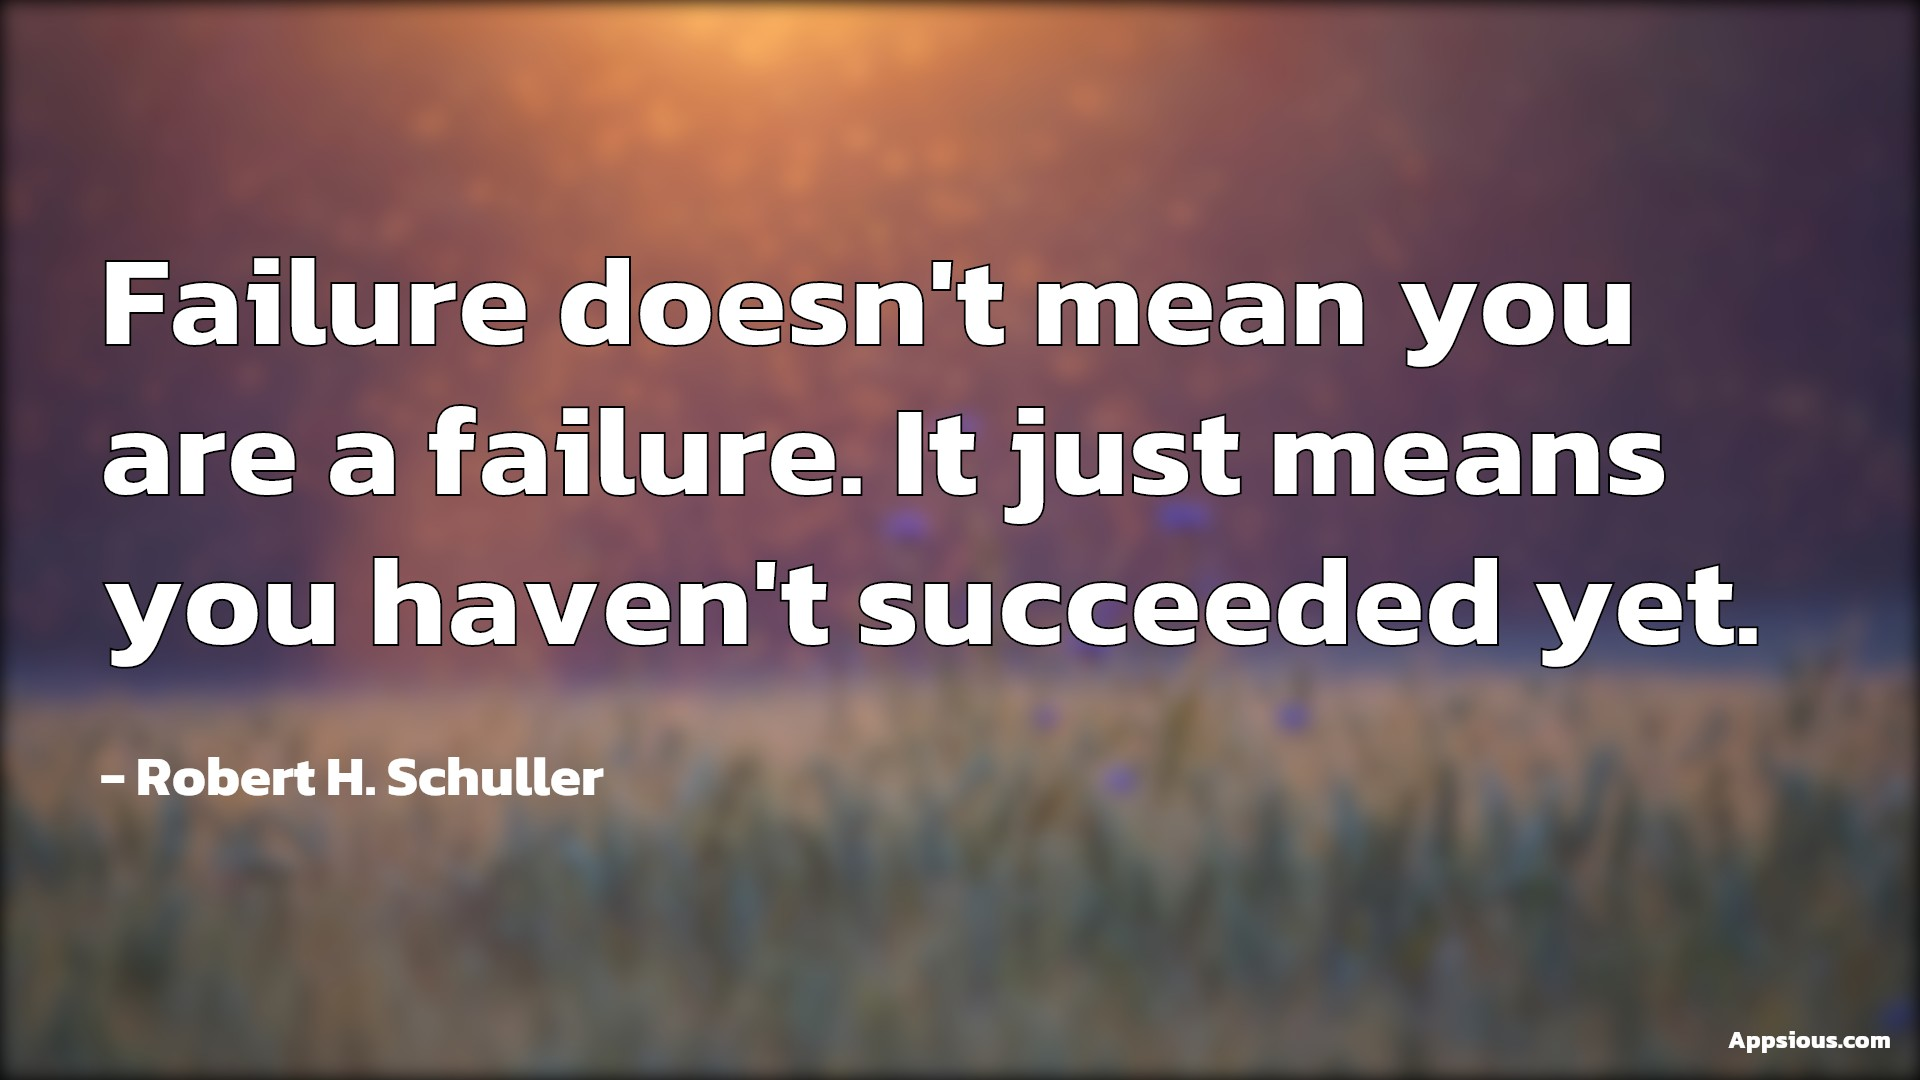 Failure doesn't mean you are a failure. It just means you haven't succeeded yet.